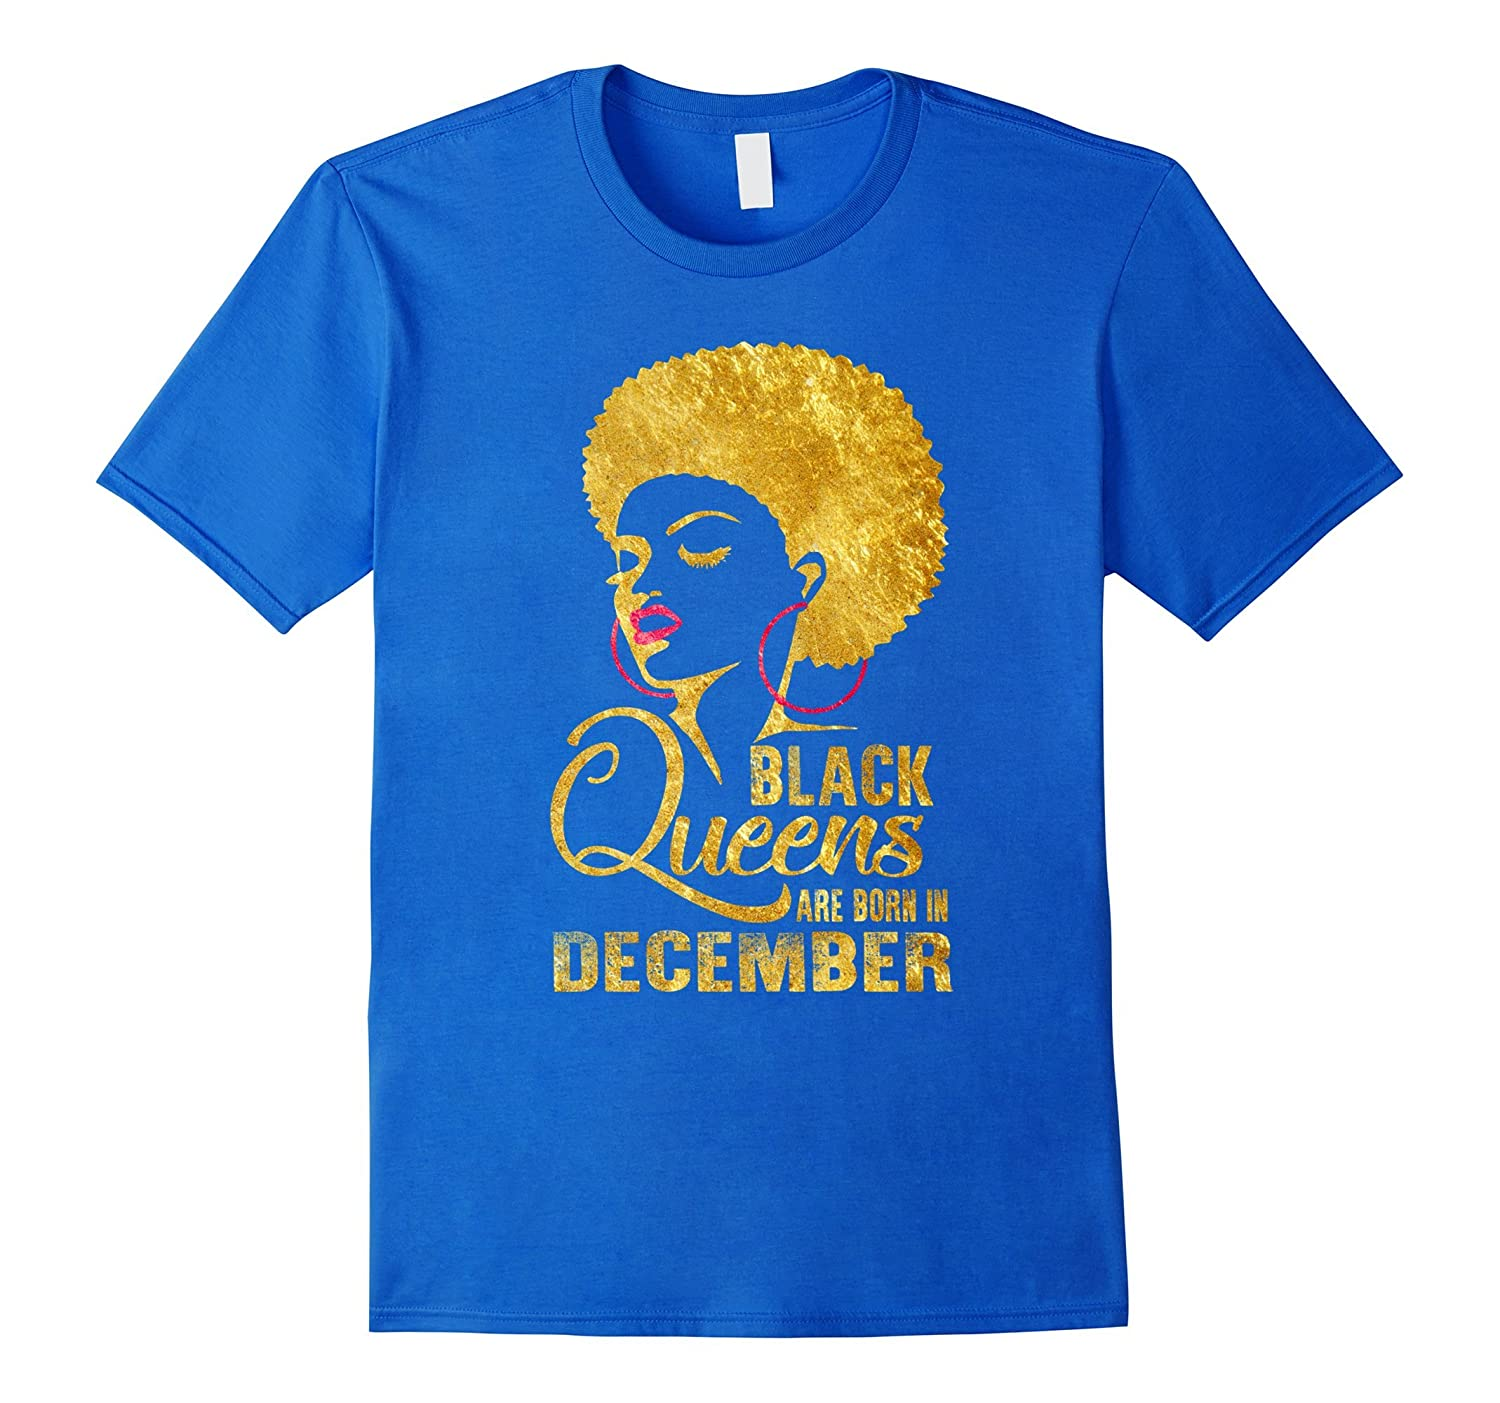 b61060834 Black Queens are Born in December T-Shirt Birthday Women's-FL ...